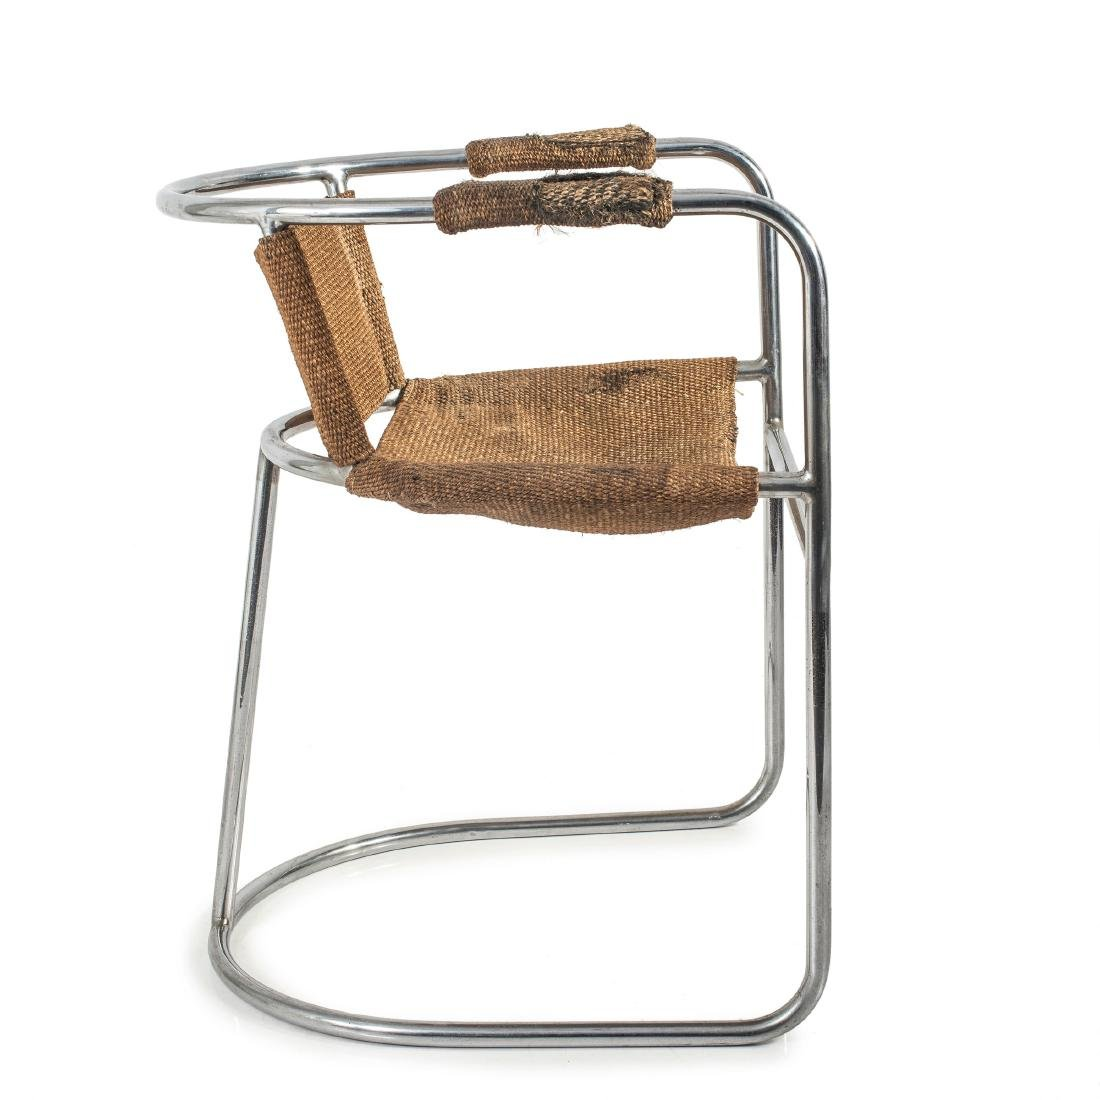 Tubular steel chair c. 1938